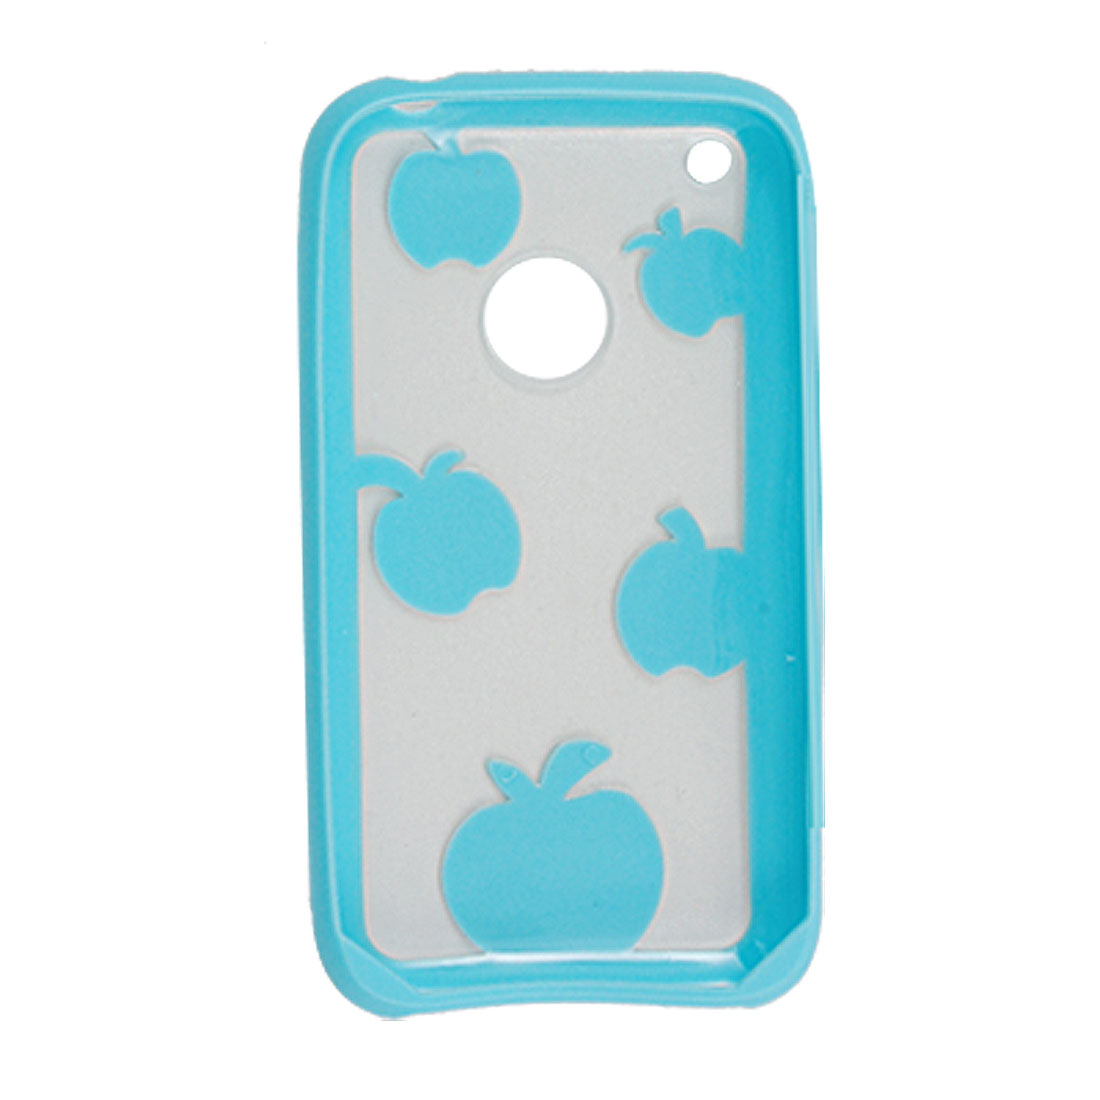 Light Blue and Clear Apple Pattern Plastic Case for iPhone 3G